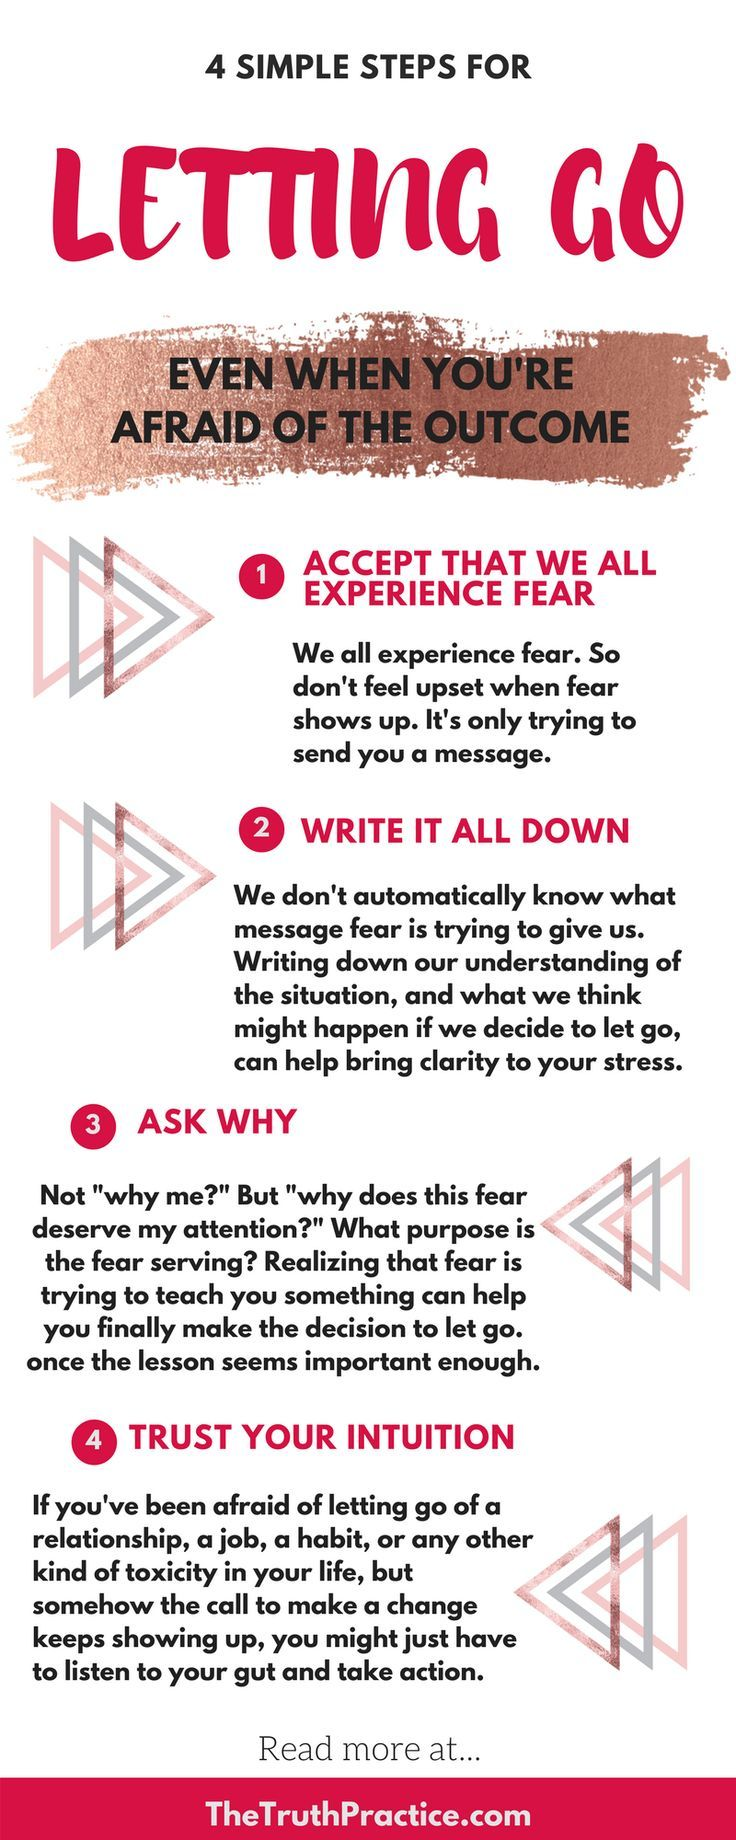 Moving beyond fear & letting go.When we have a difficult decision to make sometimes the fear of not knowing how things will turn out can stop us from following our dreams or moving forward.